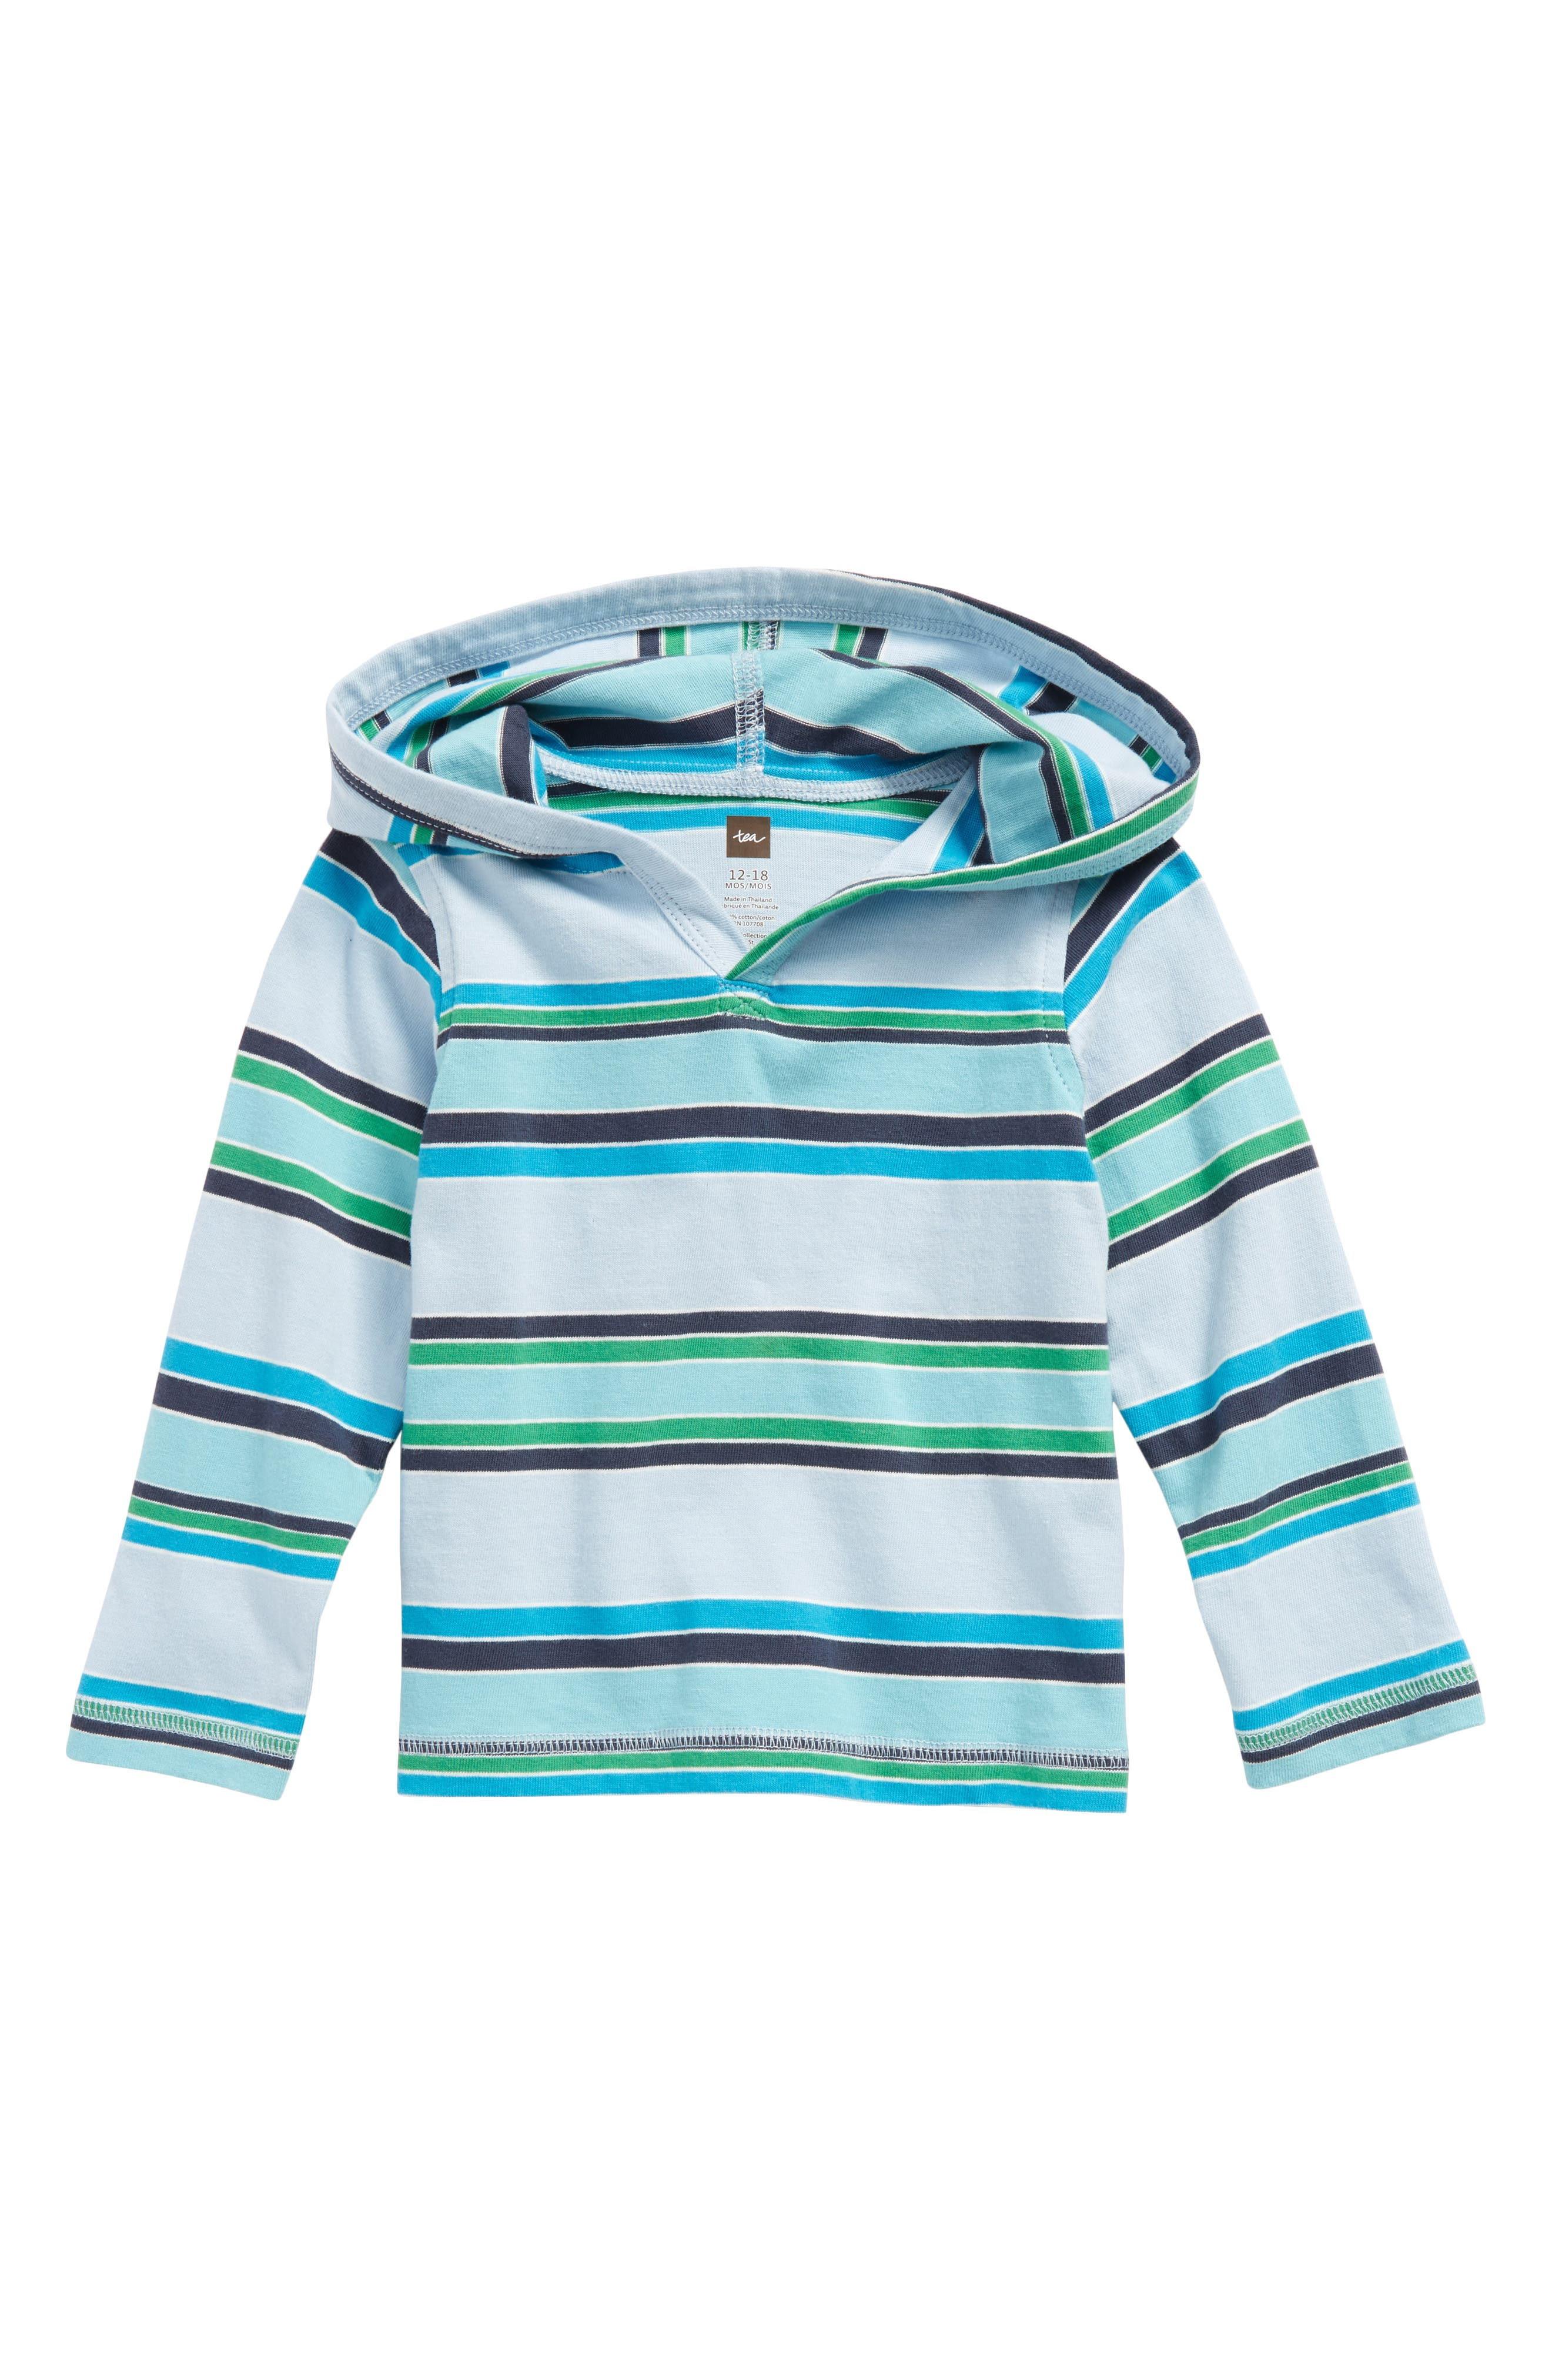 Alternate Image 1 Selected - Tea Collection Horizon Happy Hoodie (Baby Boys)